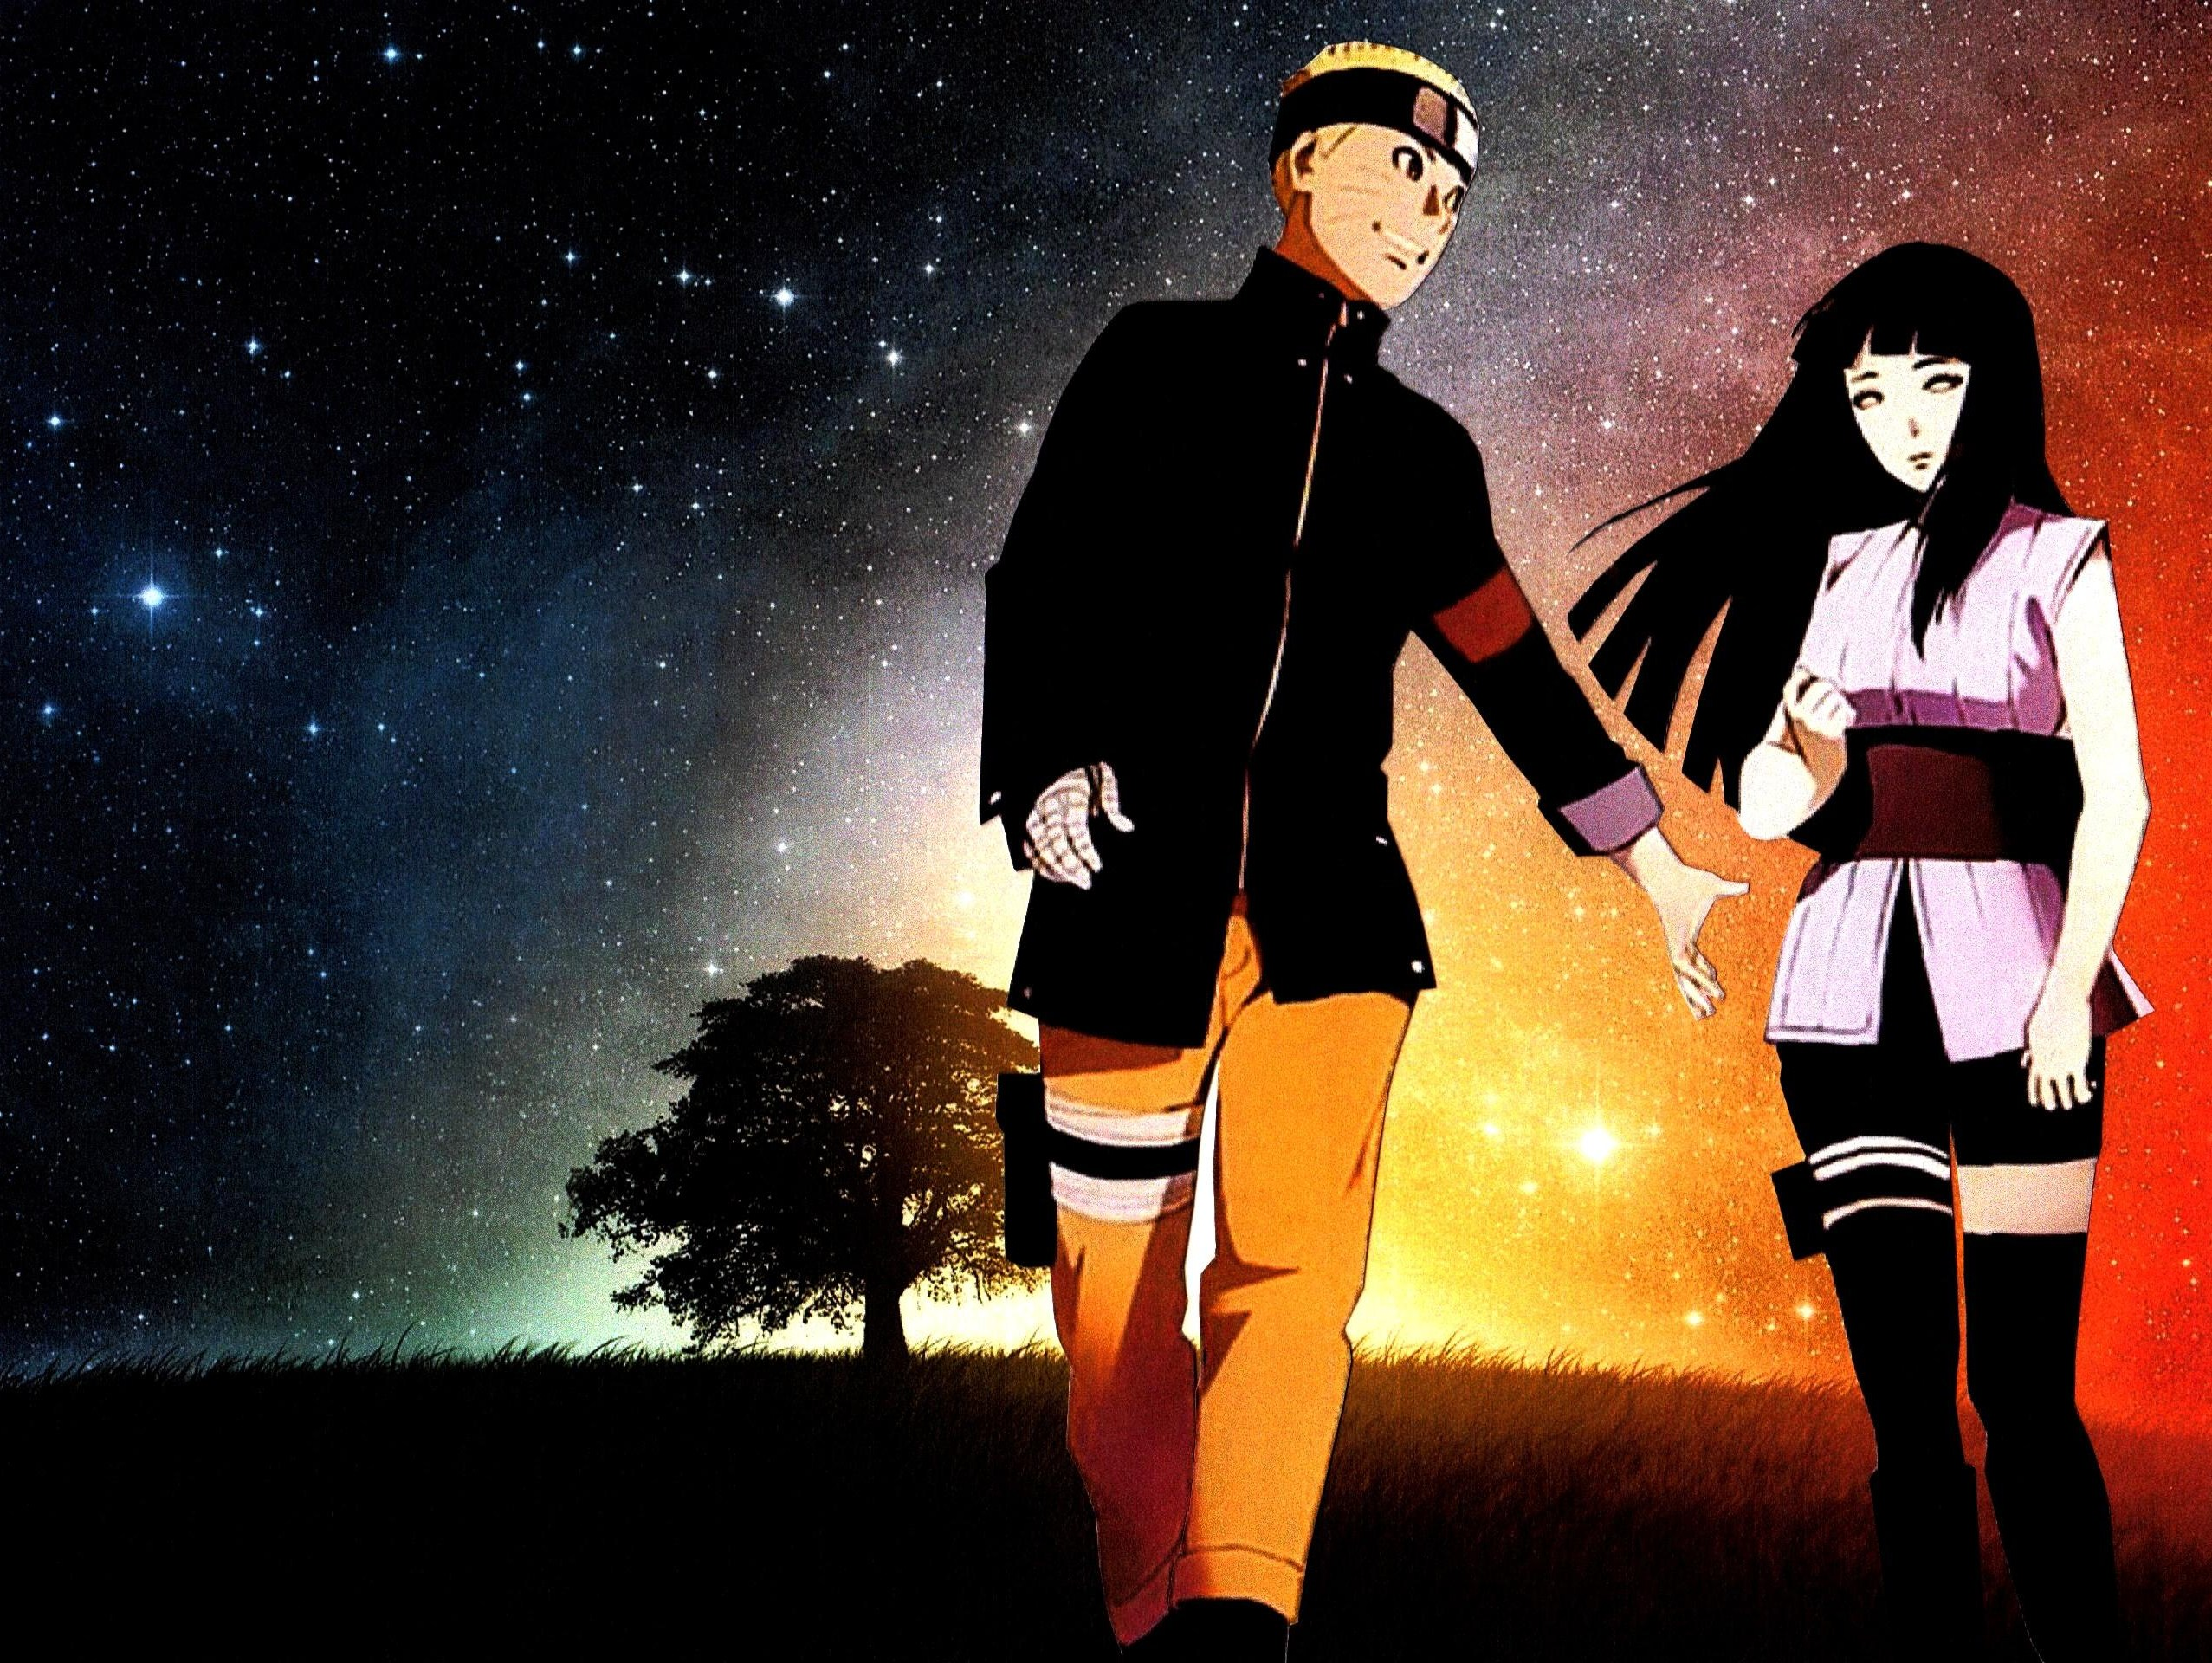 naruto and hinata the last wallpaper 4 by weissdrum on